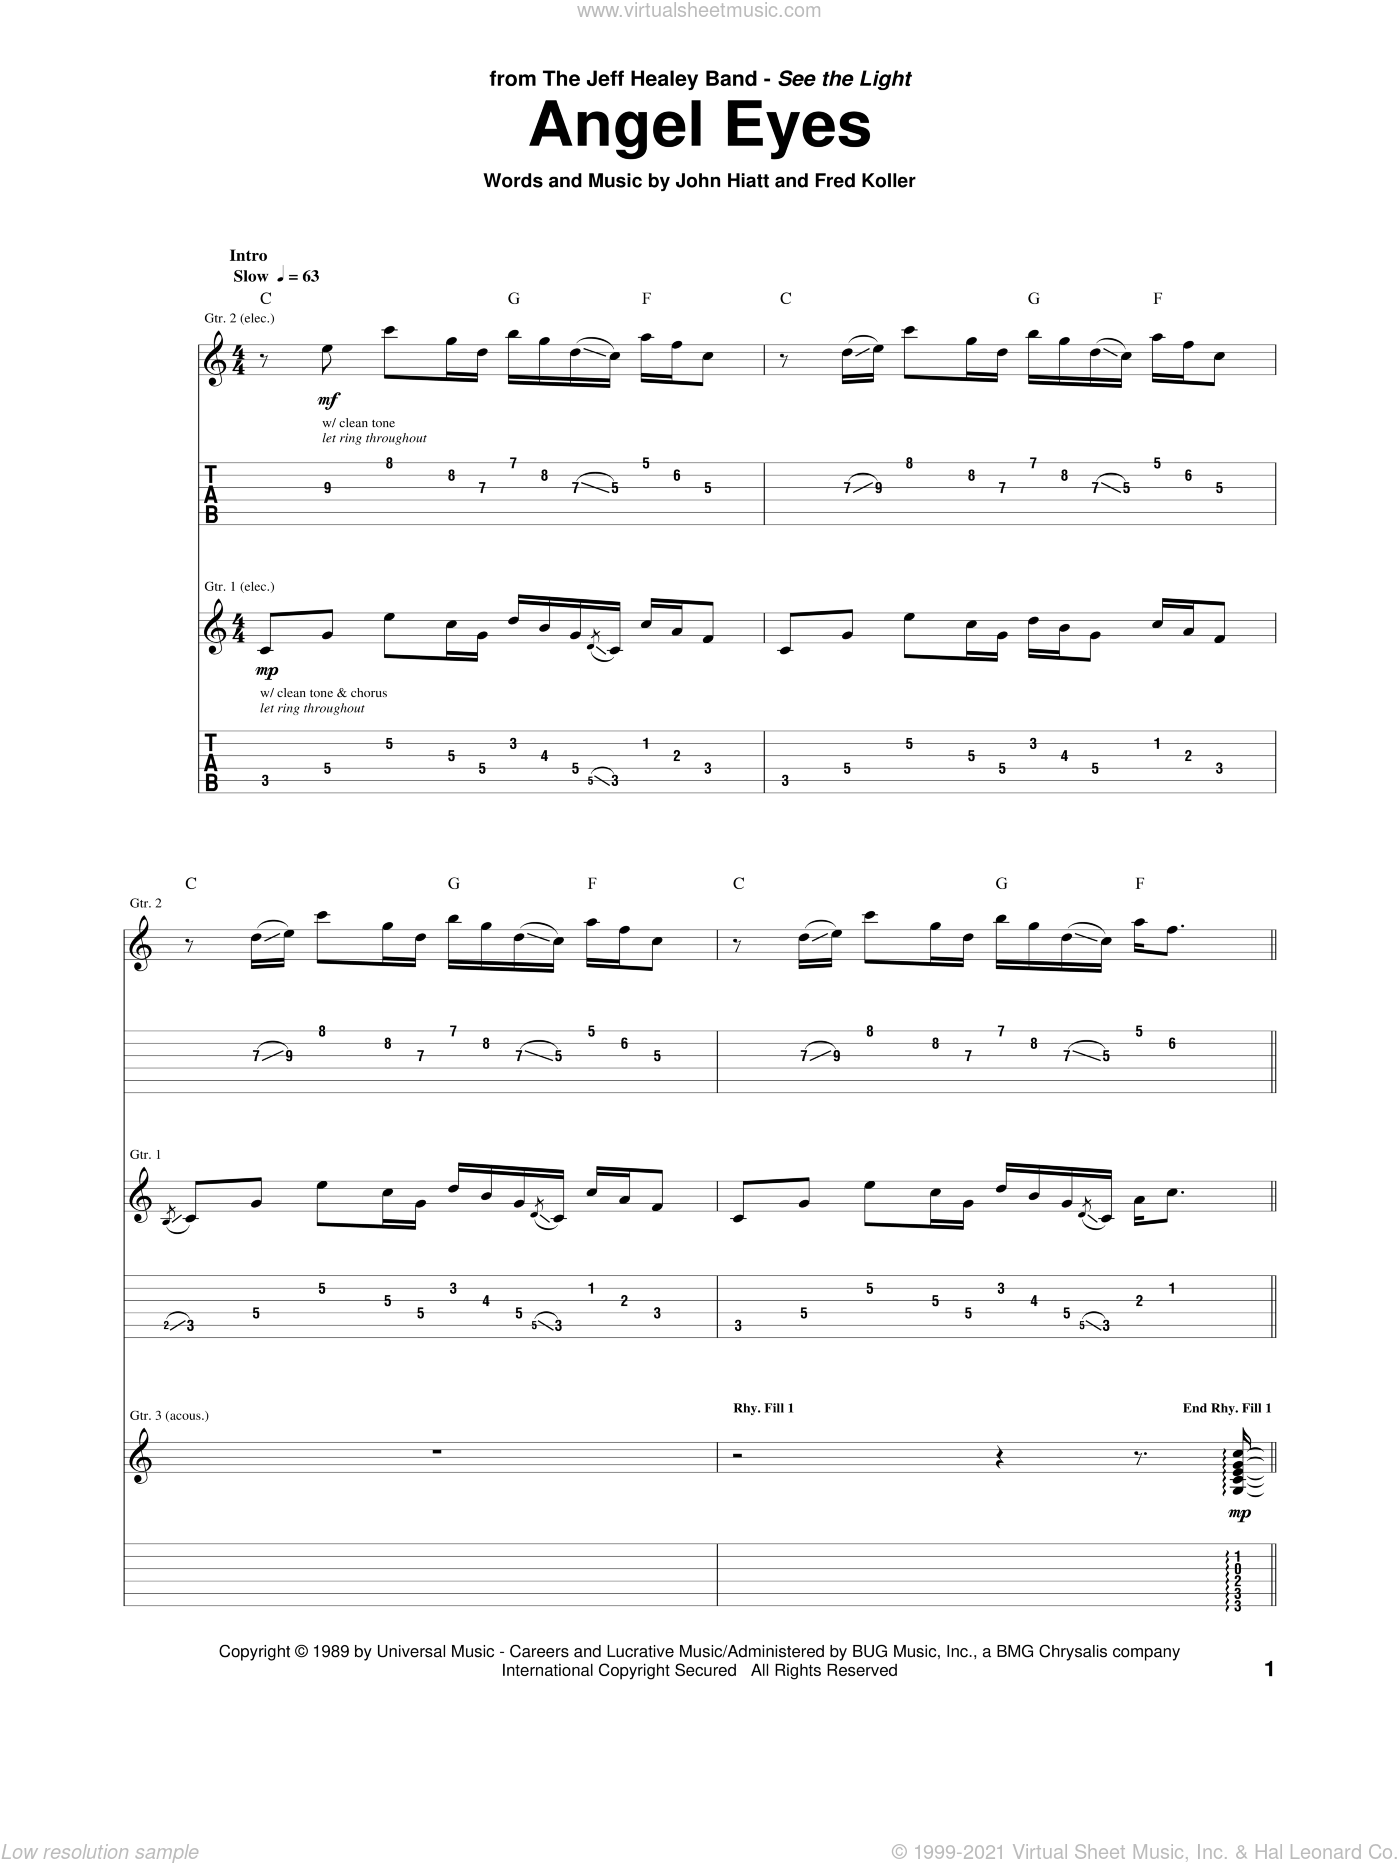 Angel Eyes sheet music for guitar (tablature) by Jeff Healey Band, Fred Koller and John Hiatt, intermediate. Score Image Preview.